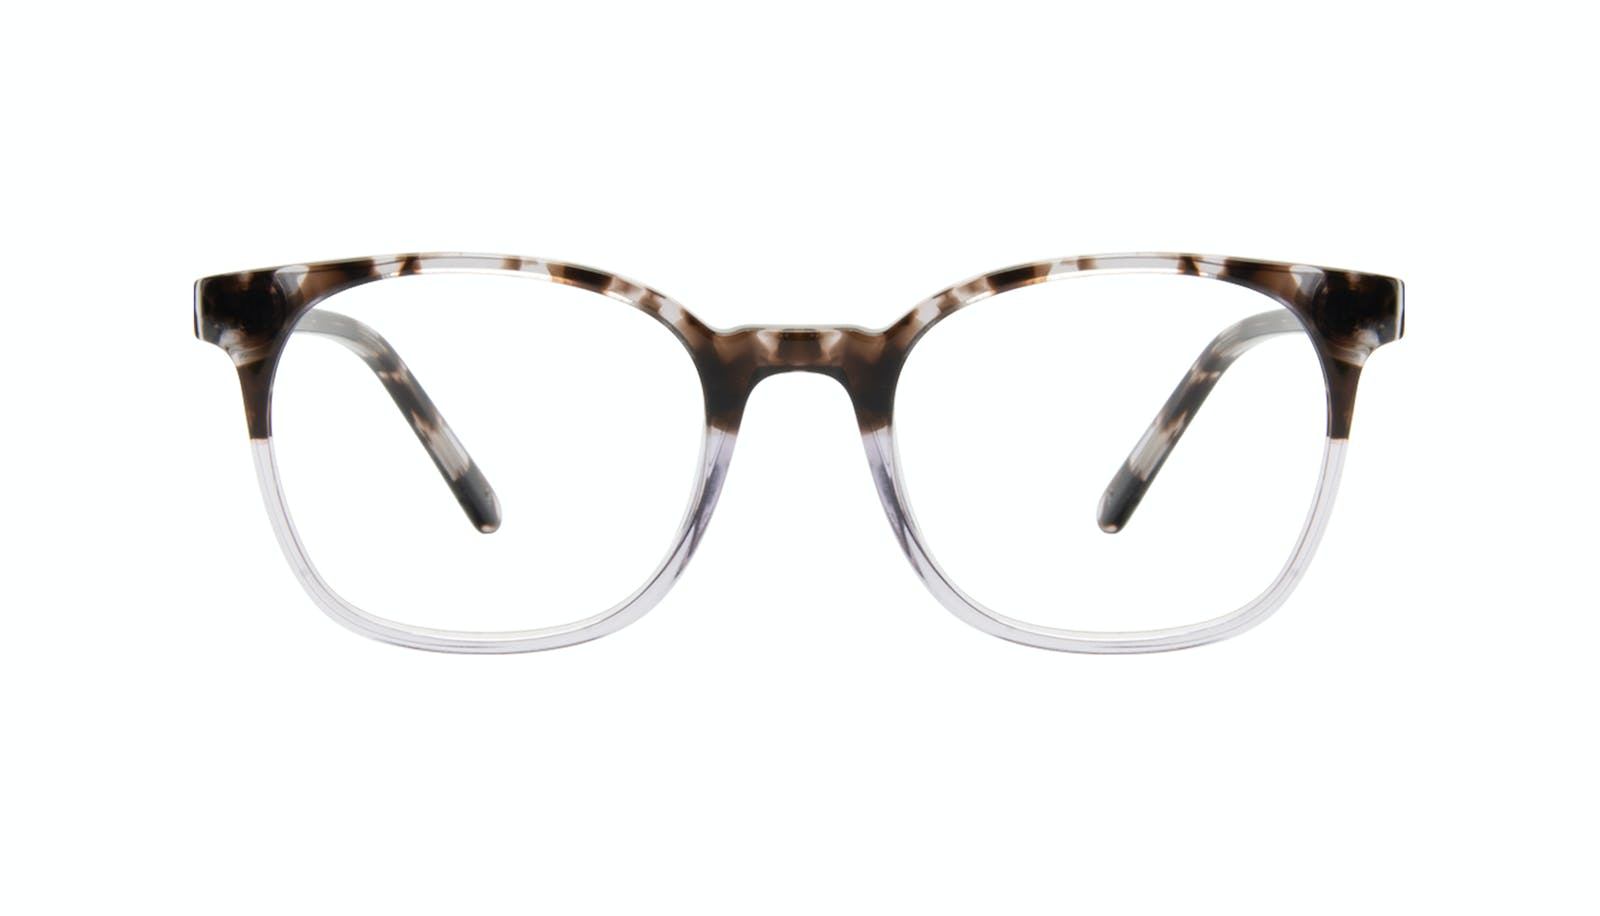 men\'s Fashion Eyeglasses: Affordable Eyewear For men | Bonlook